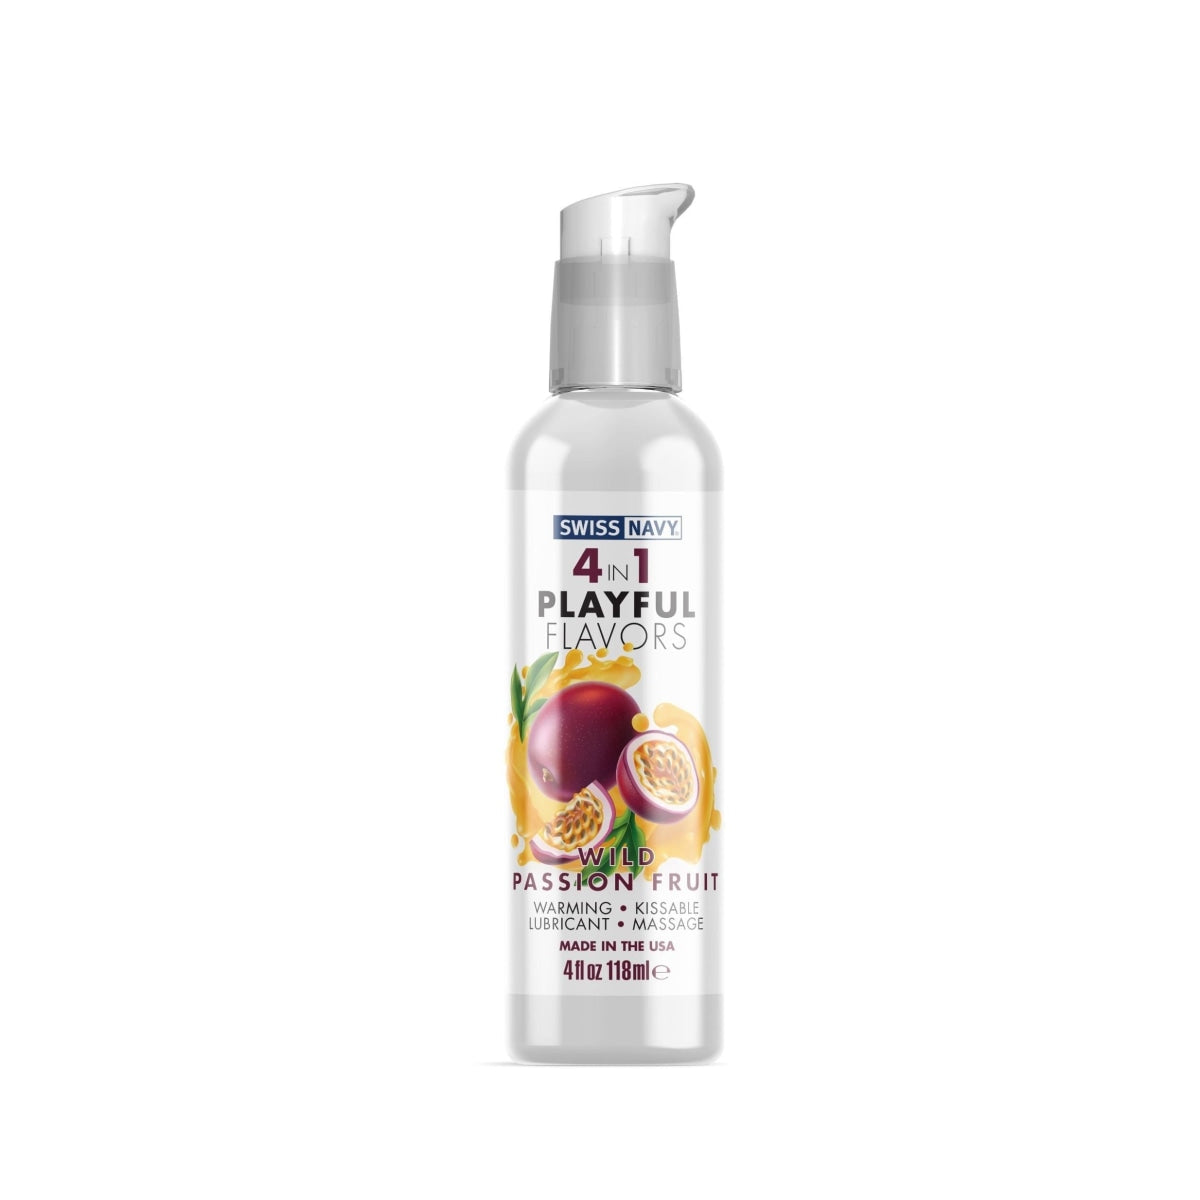 Swiss Navy 4 In 1 Playful Flavors Wild Passion Fruit 4oz